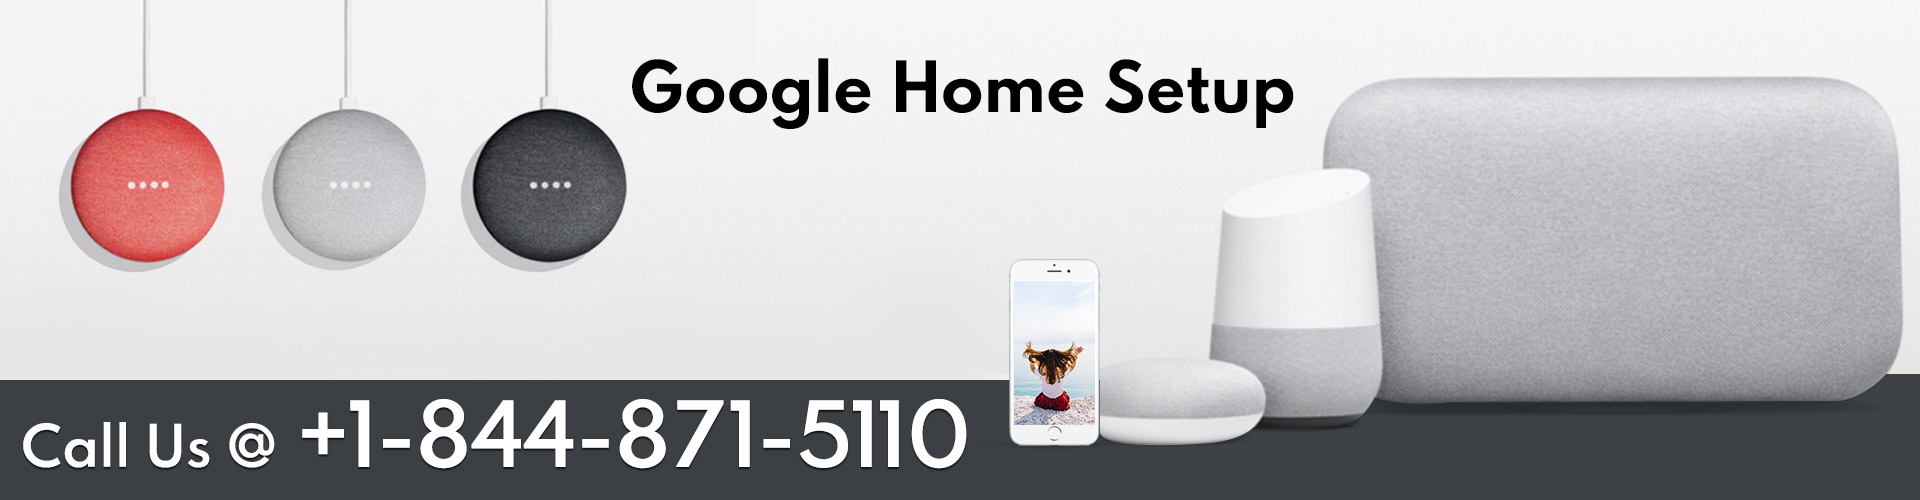 Google Home Setup - 24X7 Tech Support